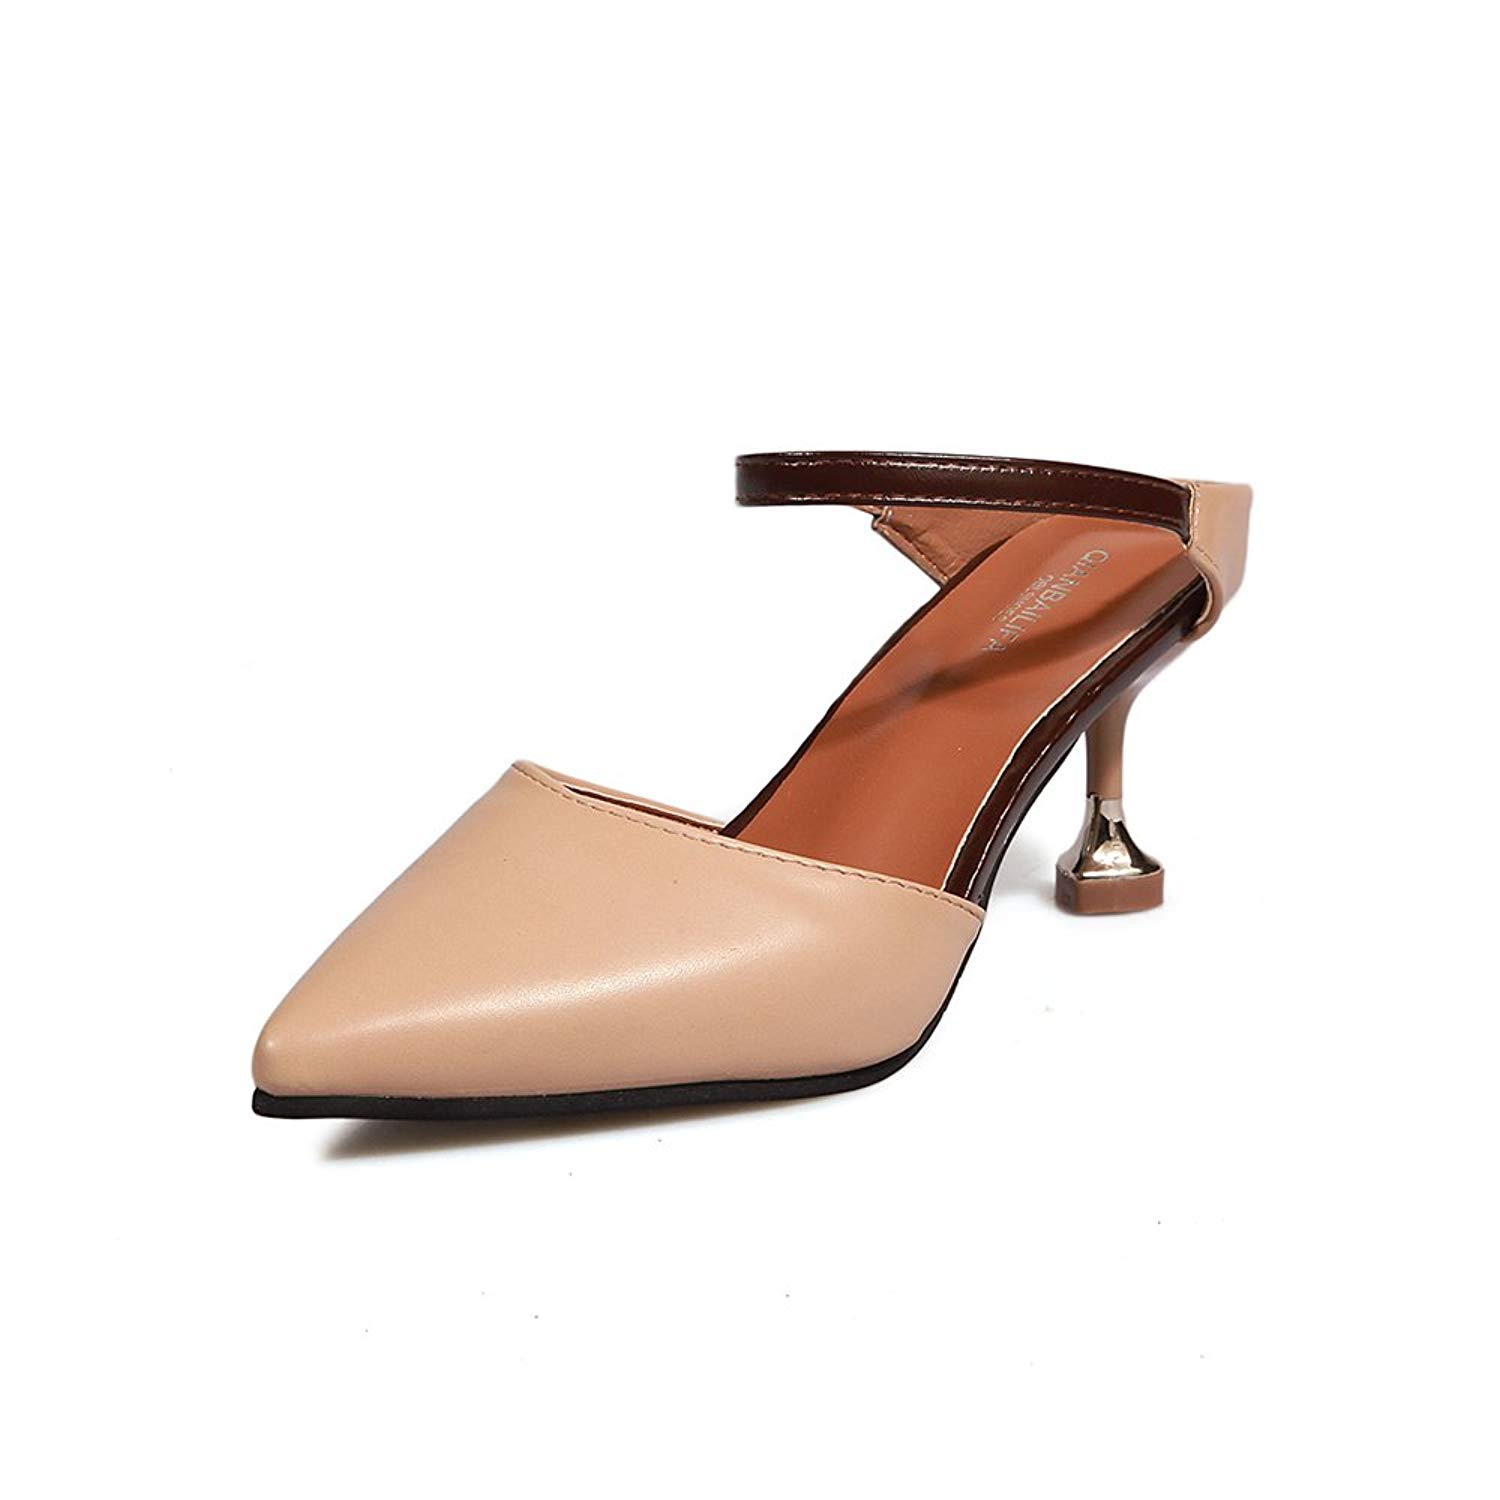 637c3c792c5 Get Quotations · Women Sexy High Heel Mules Clogs Pointed Toe Platform Mules  Ladies Leather Sole Slippers